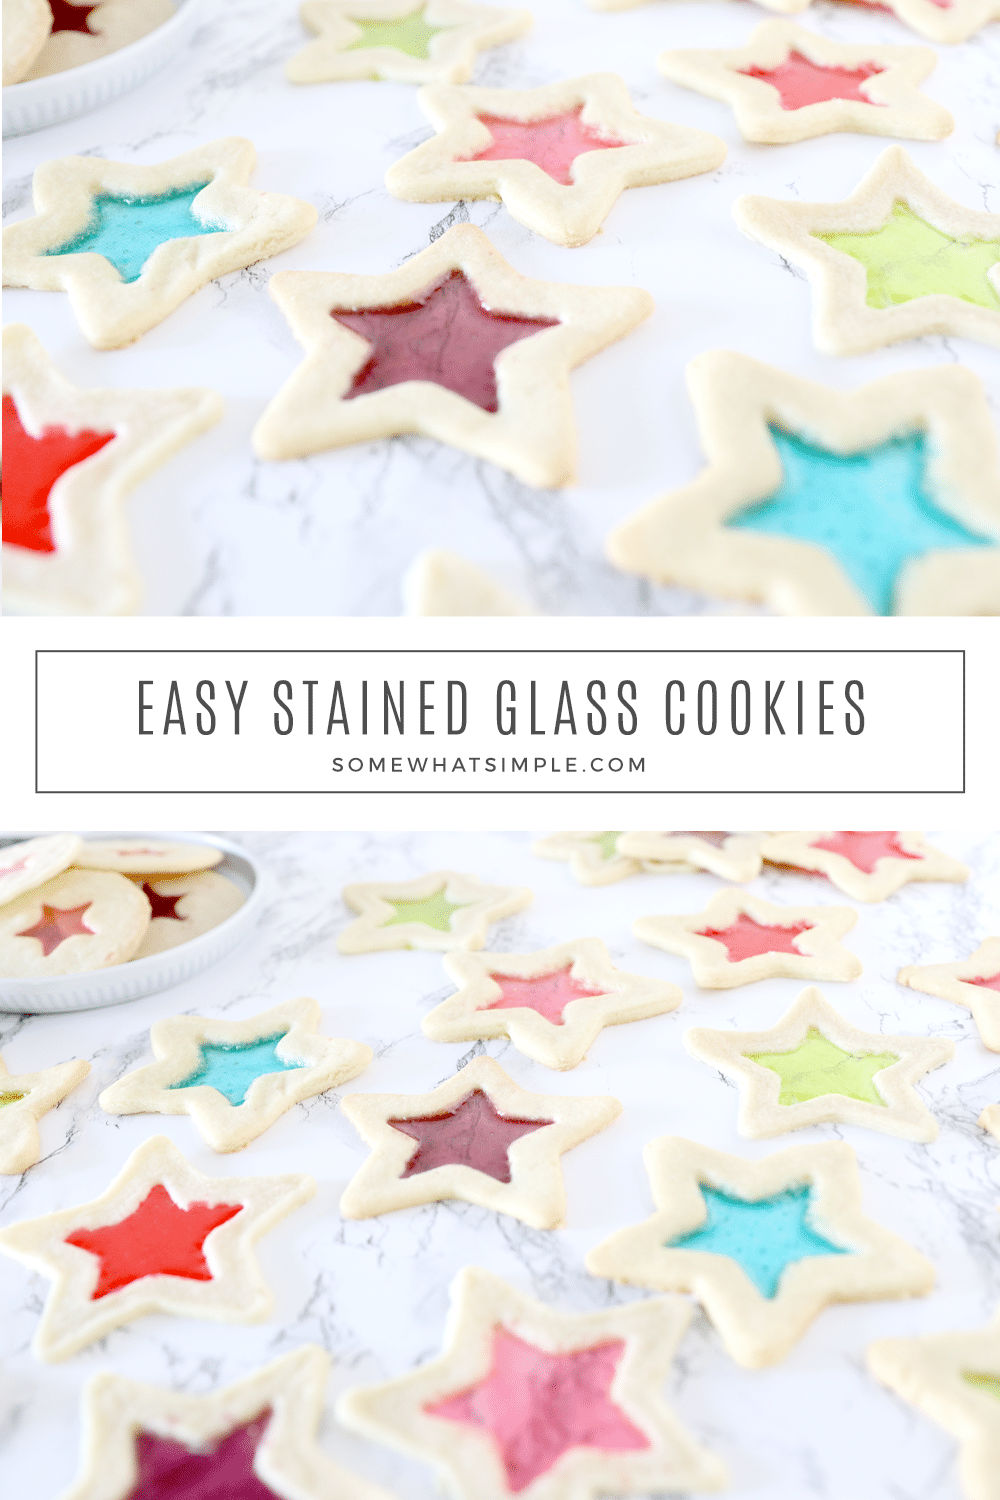 3-ingredient Stained Glass Cookies are colorful, tasty, and so simple to make! via @somewhatsimple